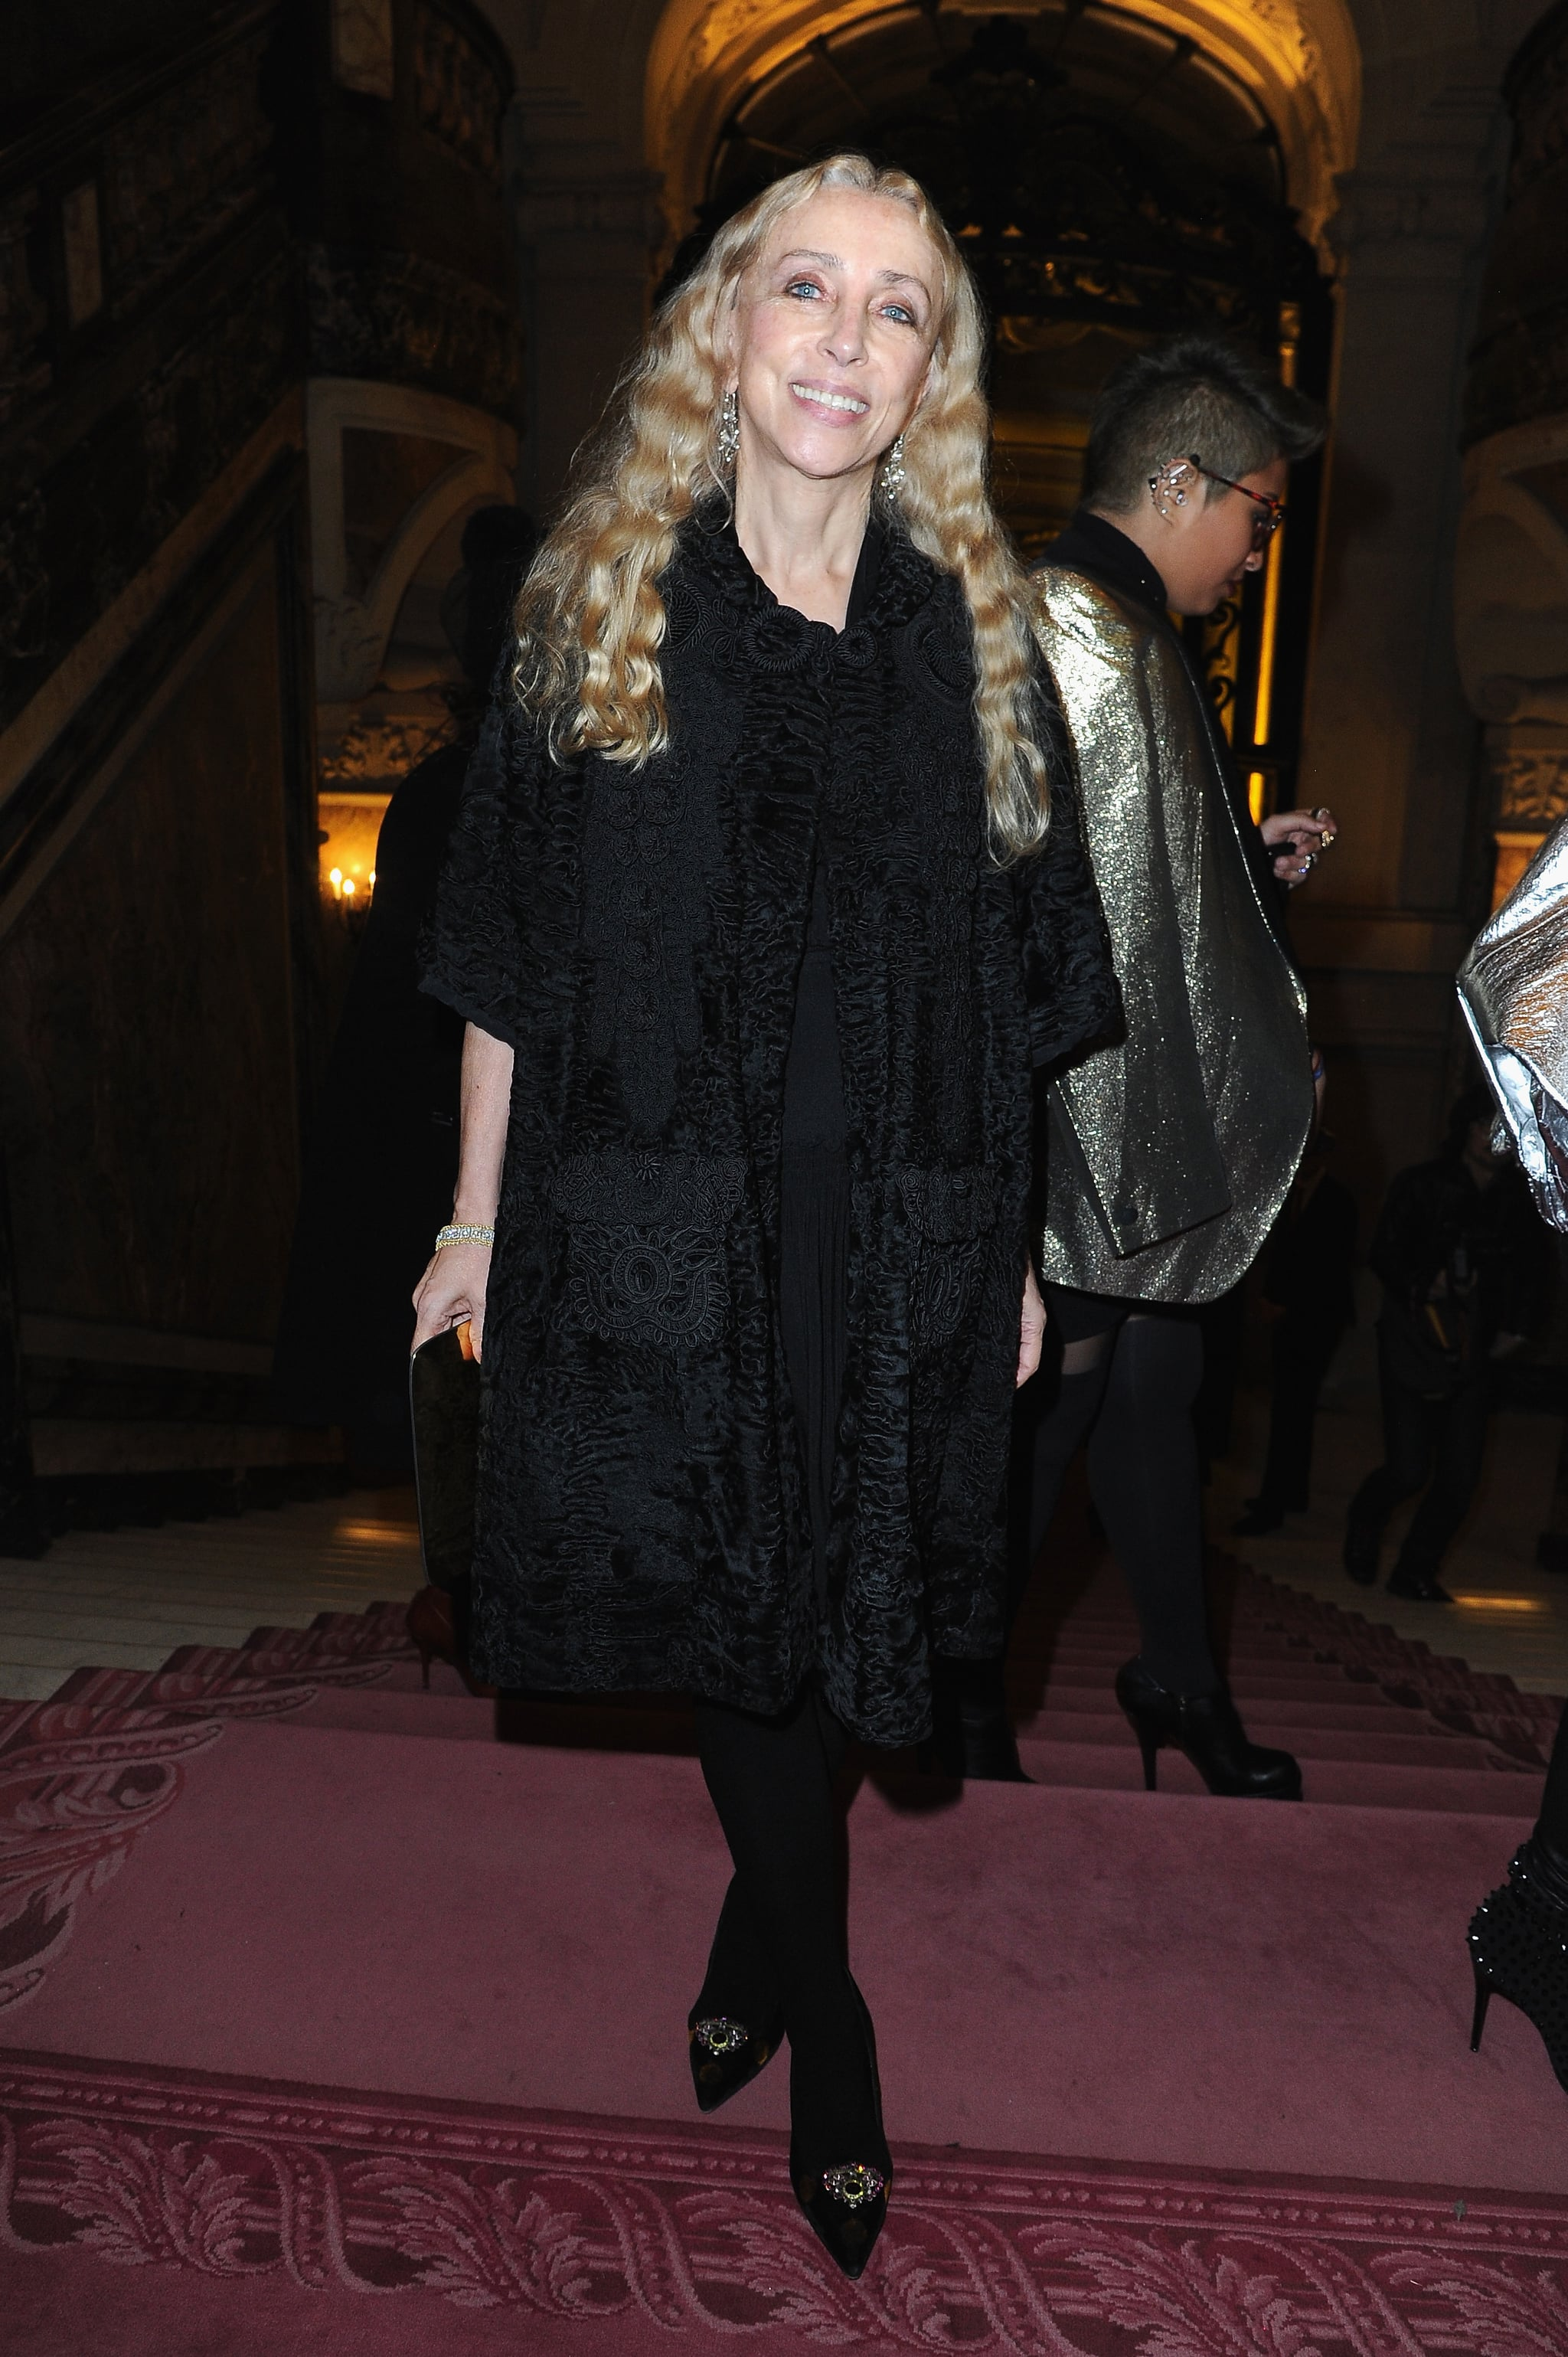 Franca Sozzani at the Atelier Versace Paris Haute Couture show.